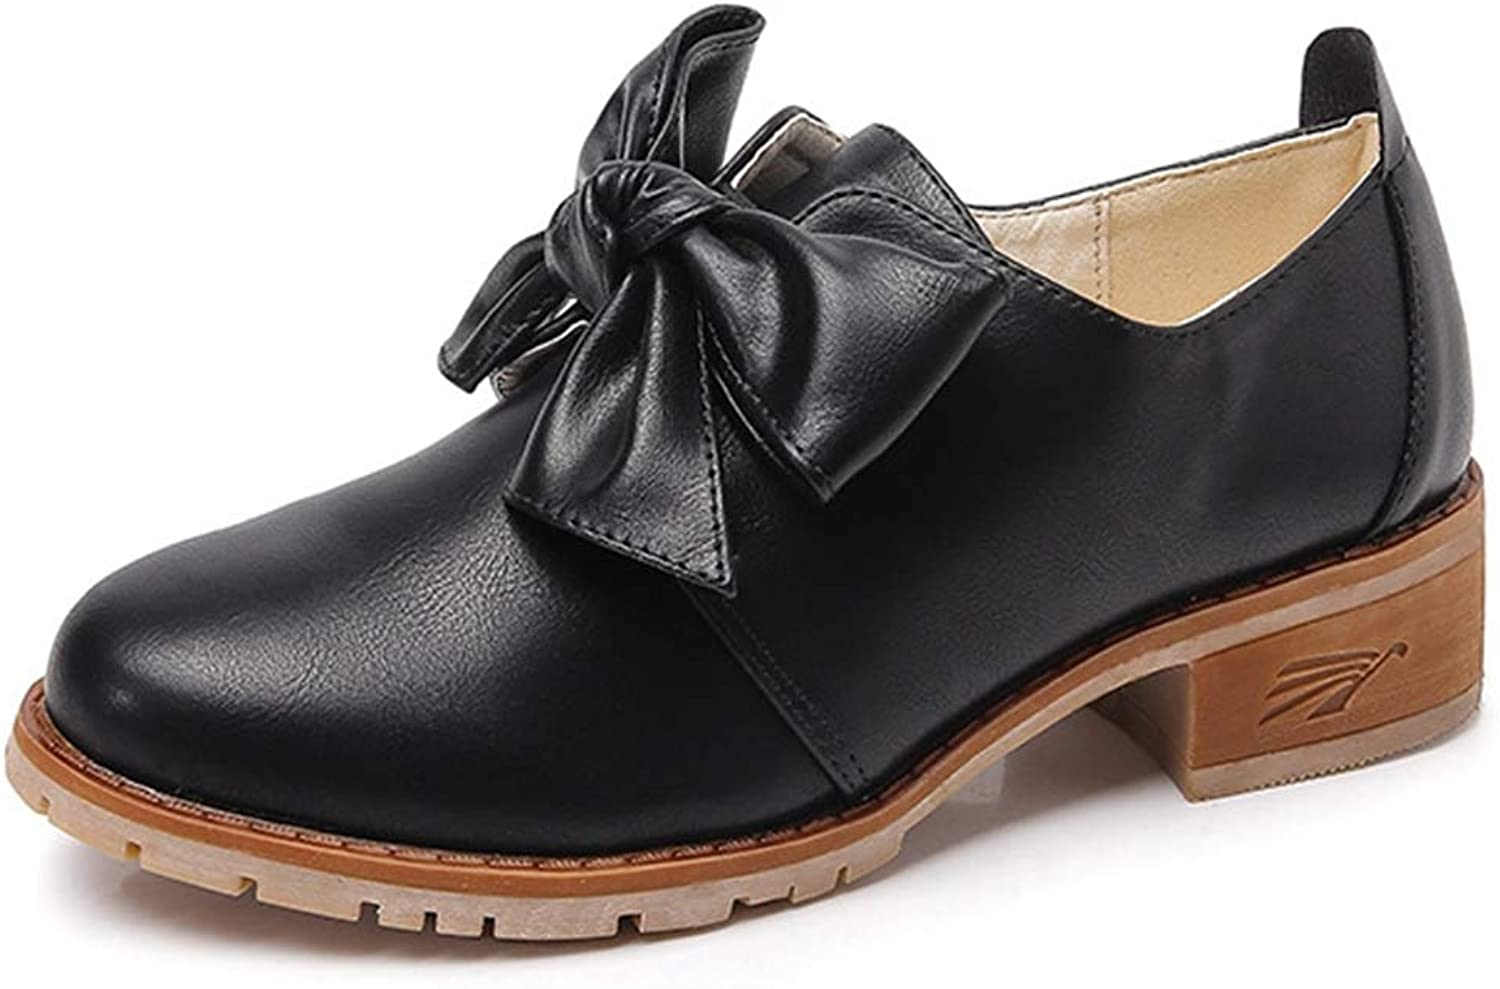 CYBLING Womens Cute Bowknot Oxfords shoes Comfortable Round Toe Low Heel Loafers Dress shoes